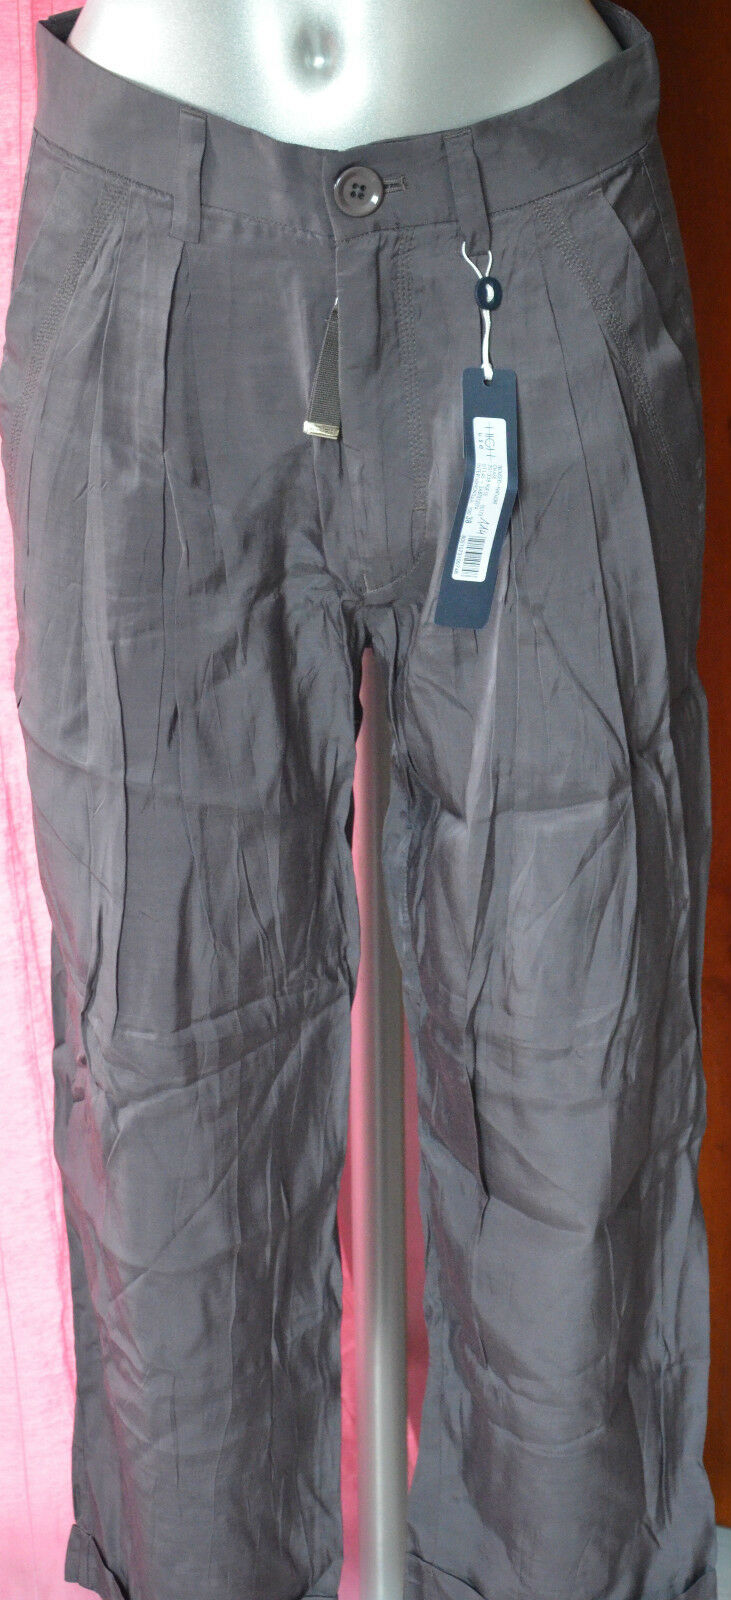 Luxurious trousers gripper glossy grey HIGH USE size 42 i46 NEW LABELS